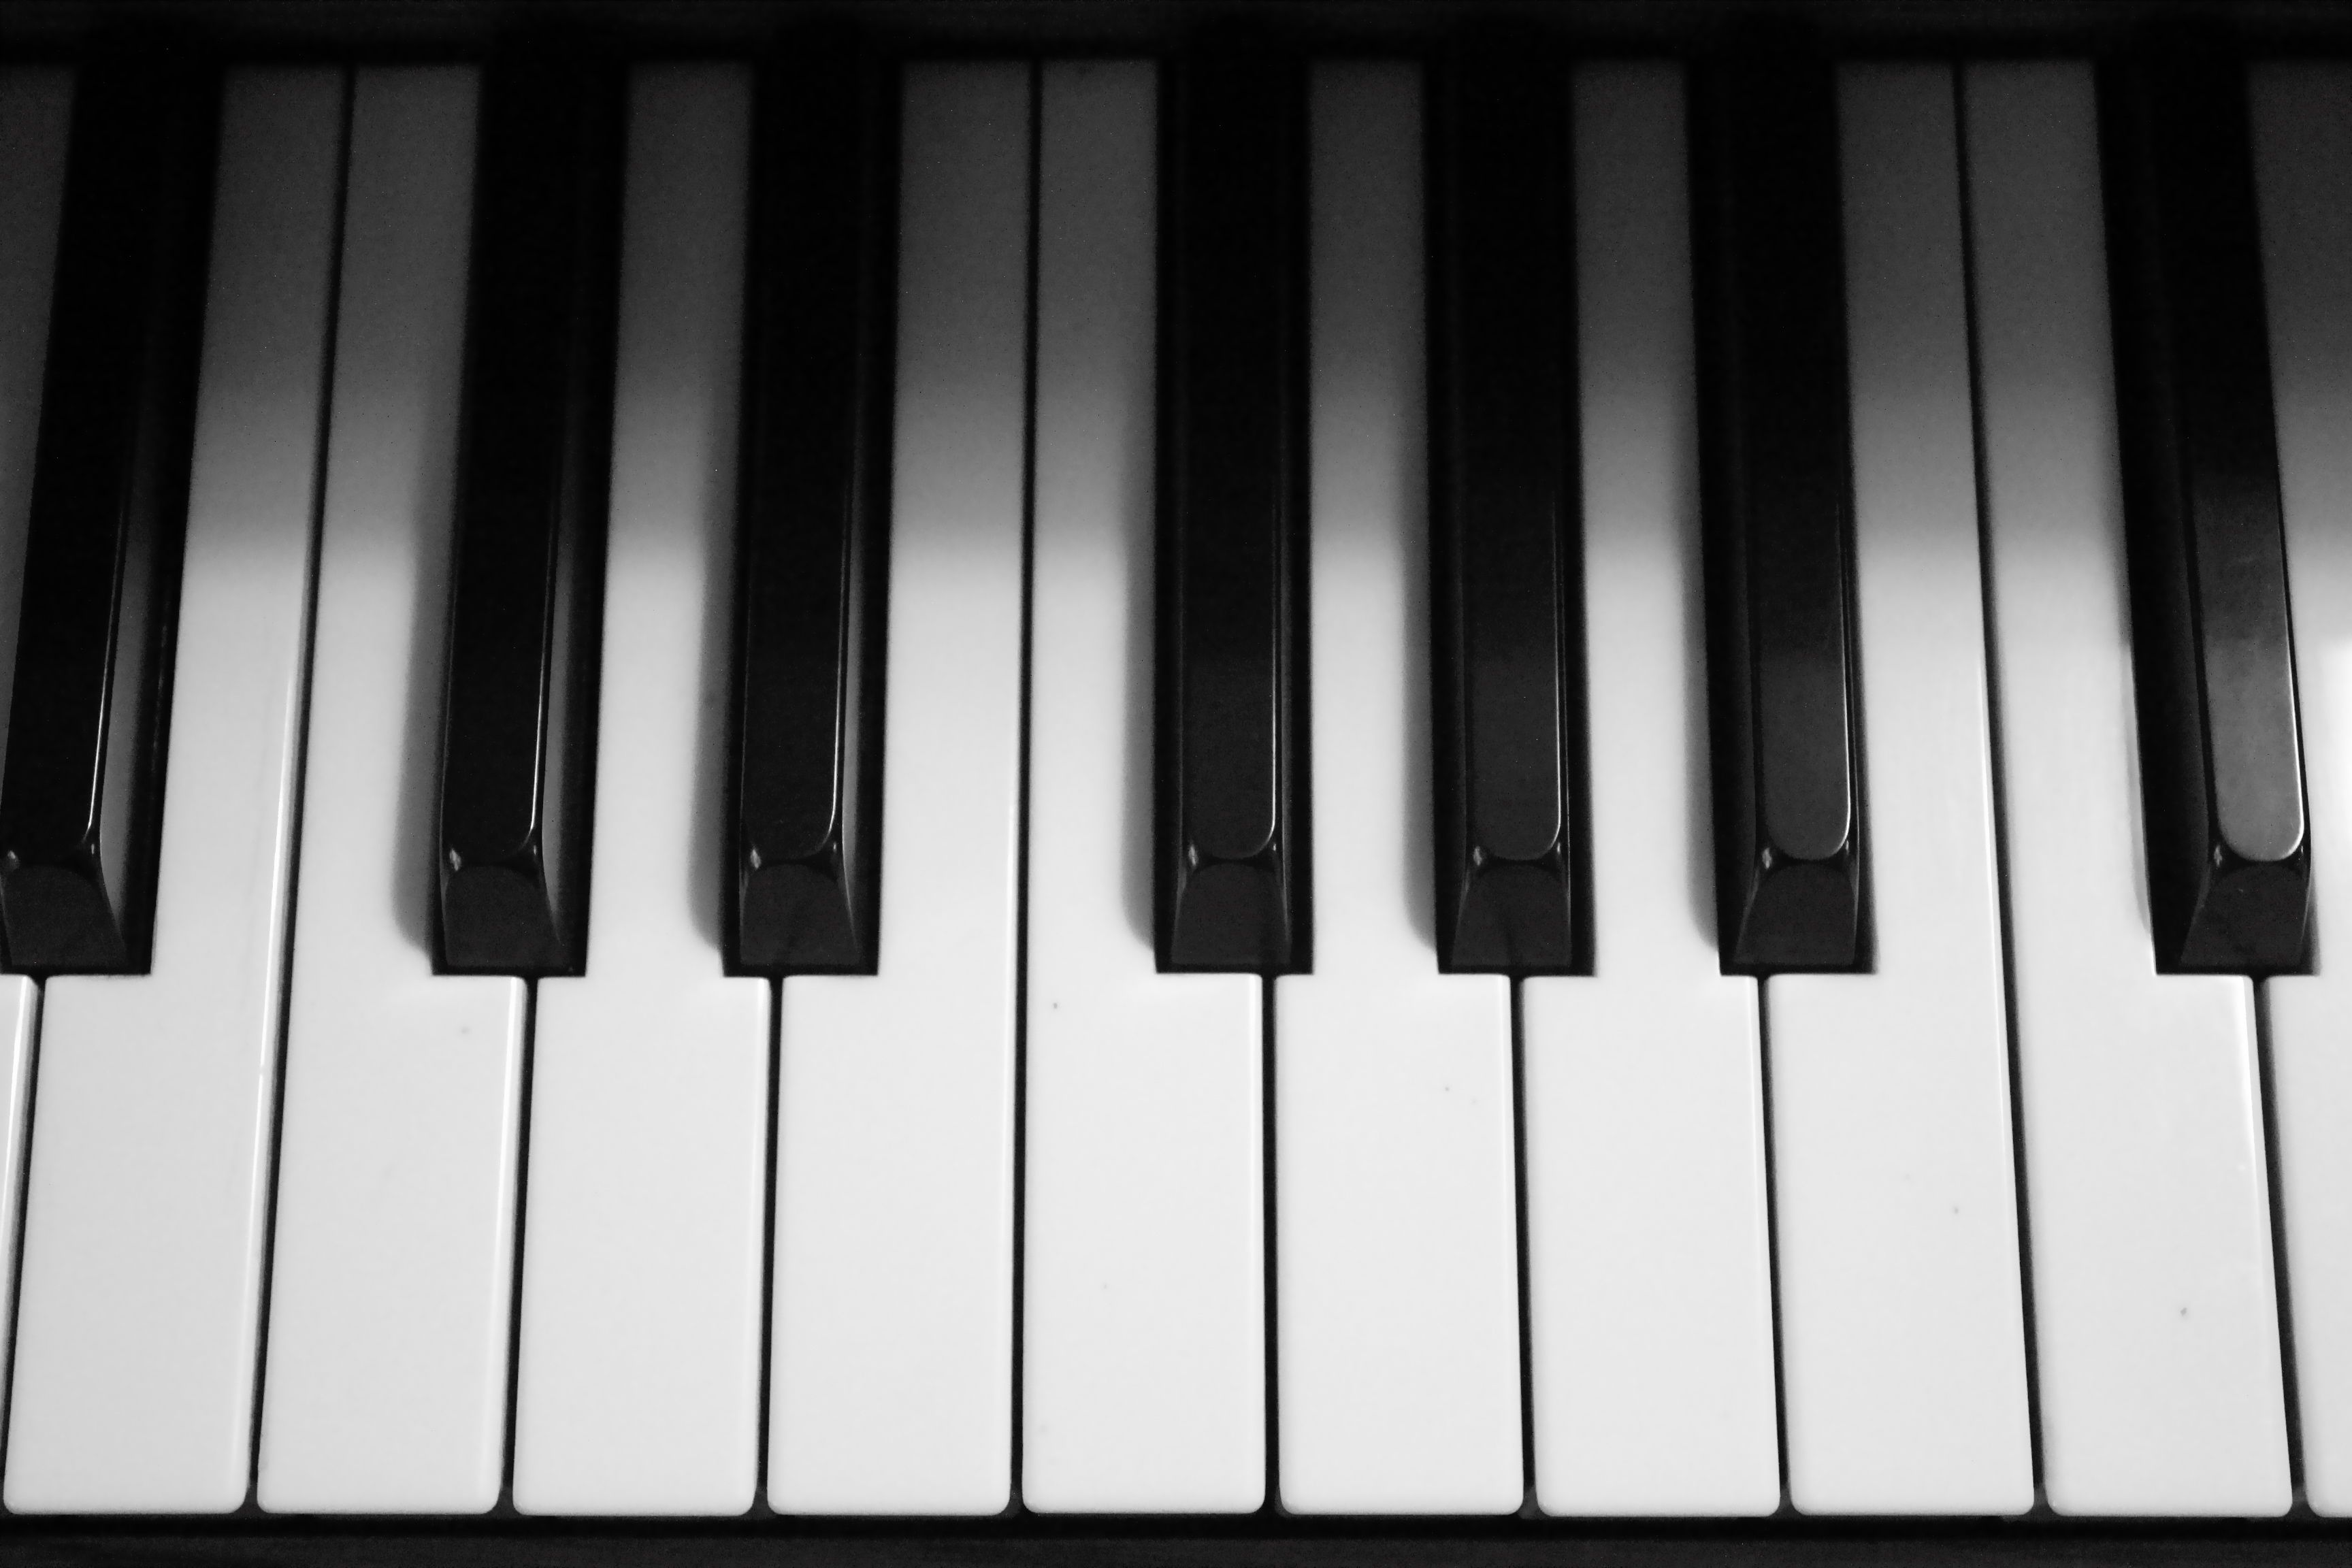 piano keys black and white photography my photography